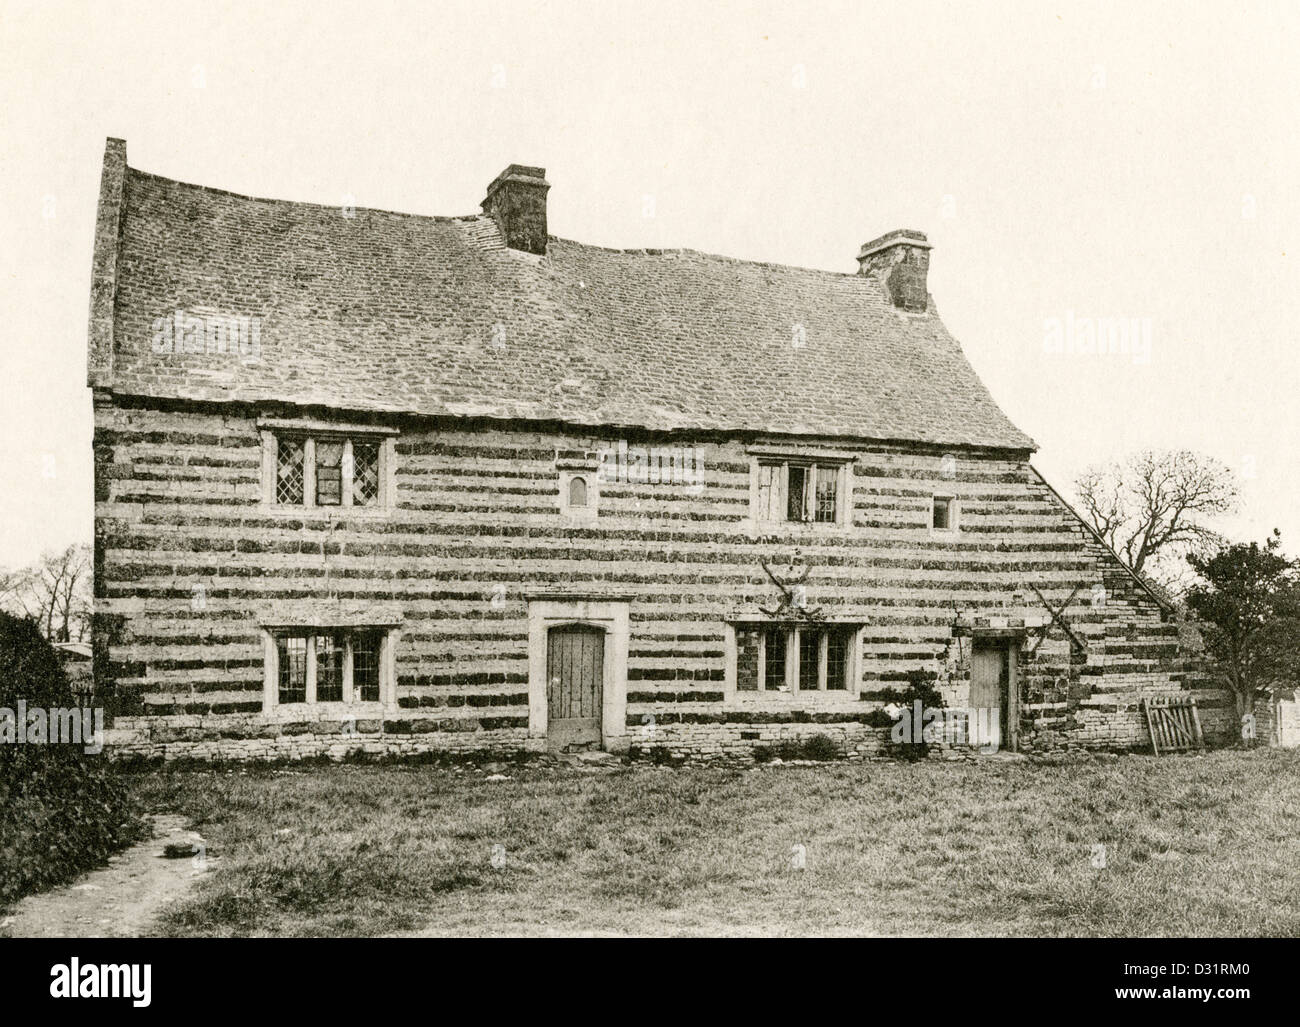 A collotype plate entitled ' Cottages at Gretton, Northants.' scanned at high resolution from a book published - Stock Image